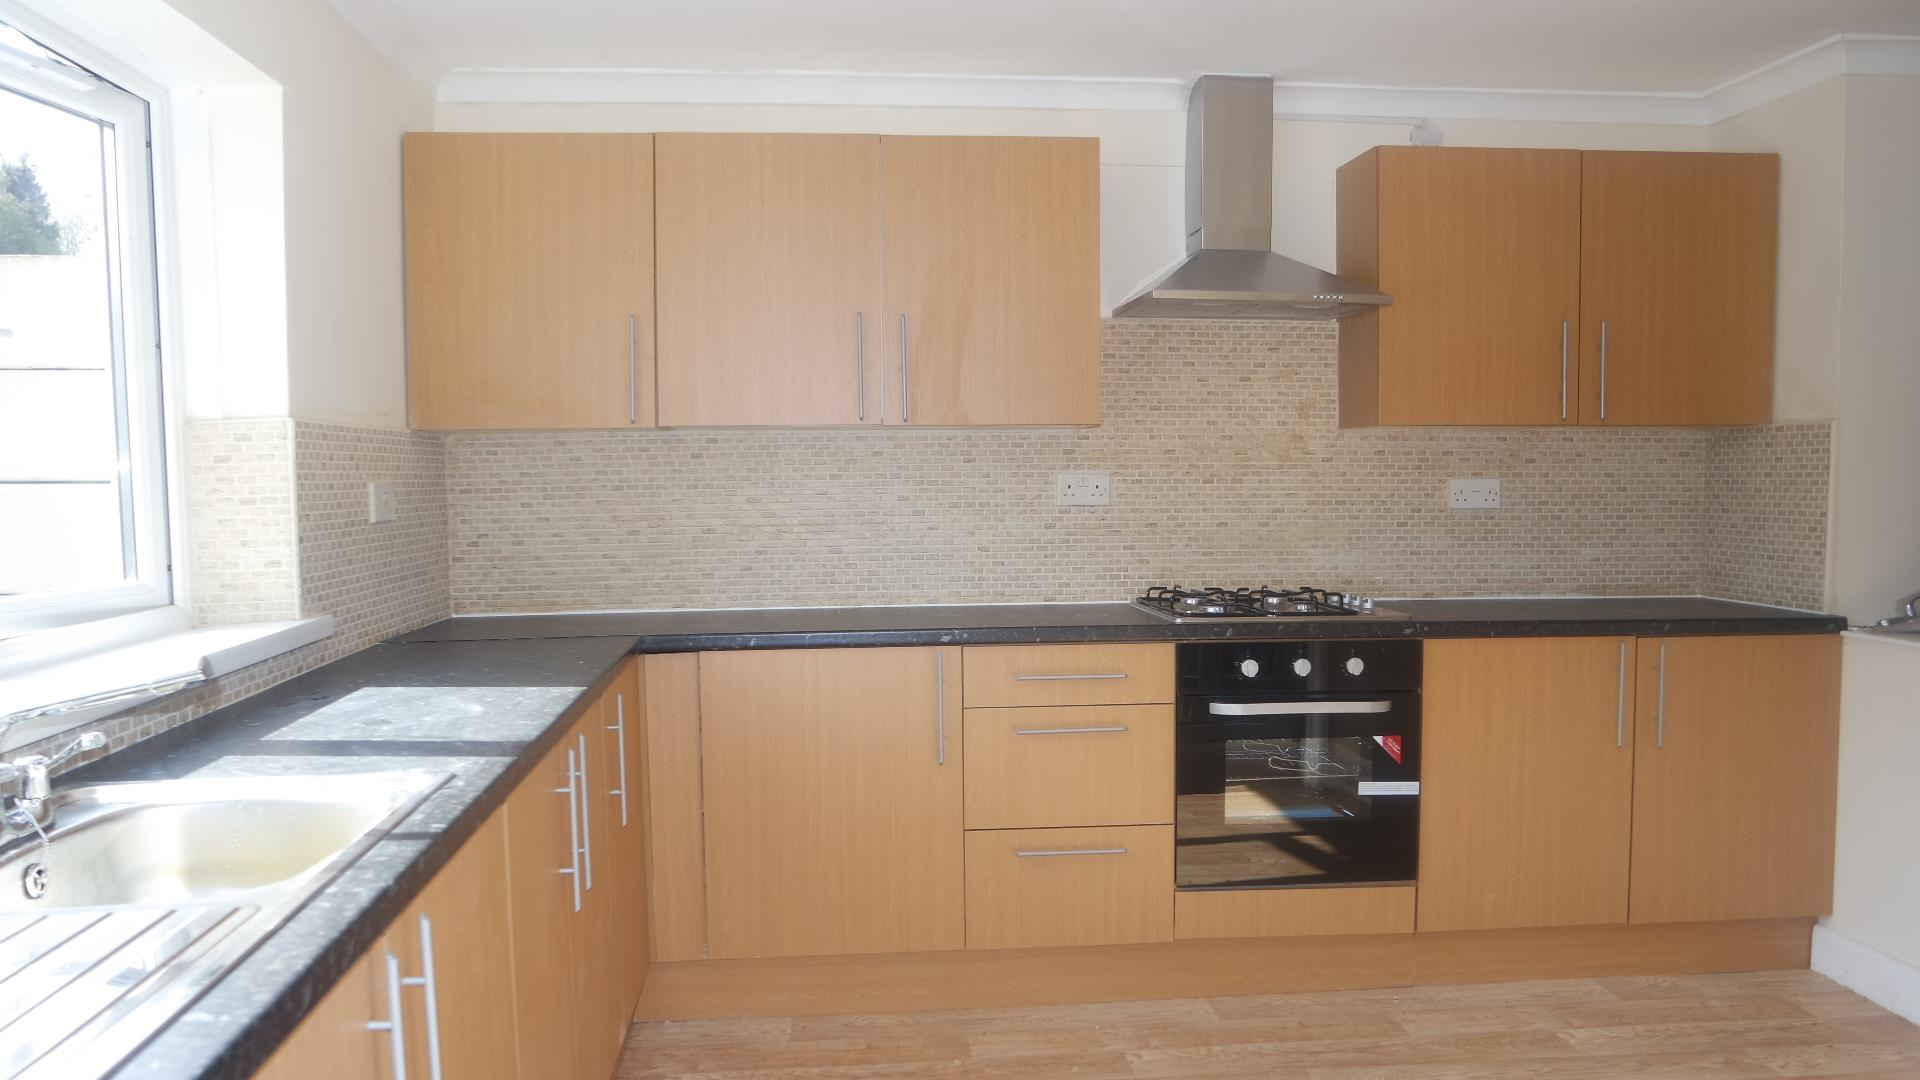 Kitchen Tiles Oldbury new birmingham road - support move | estate agents west bromwich